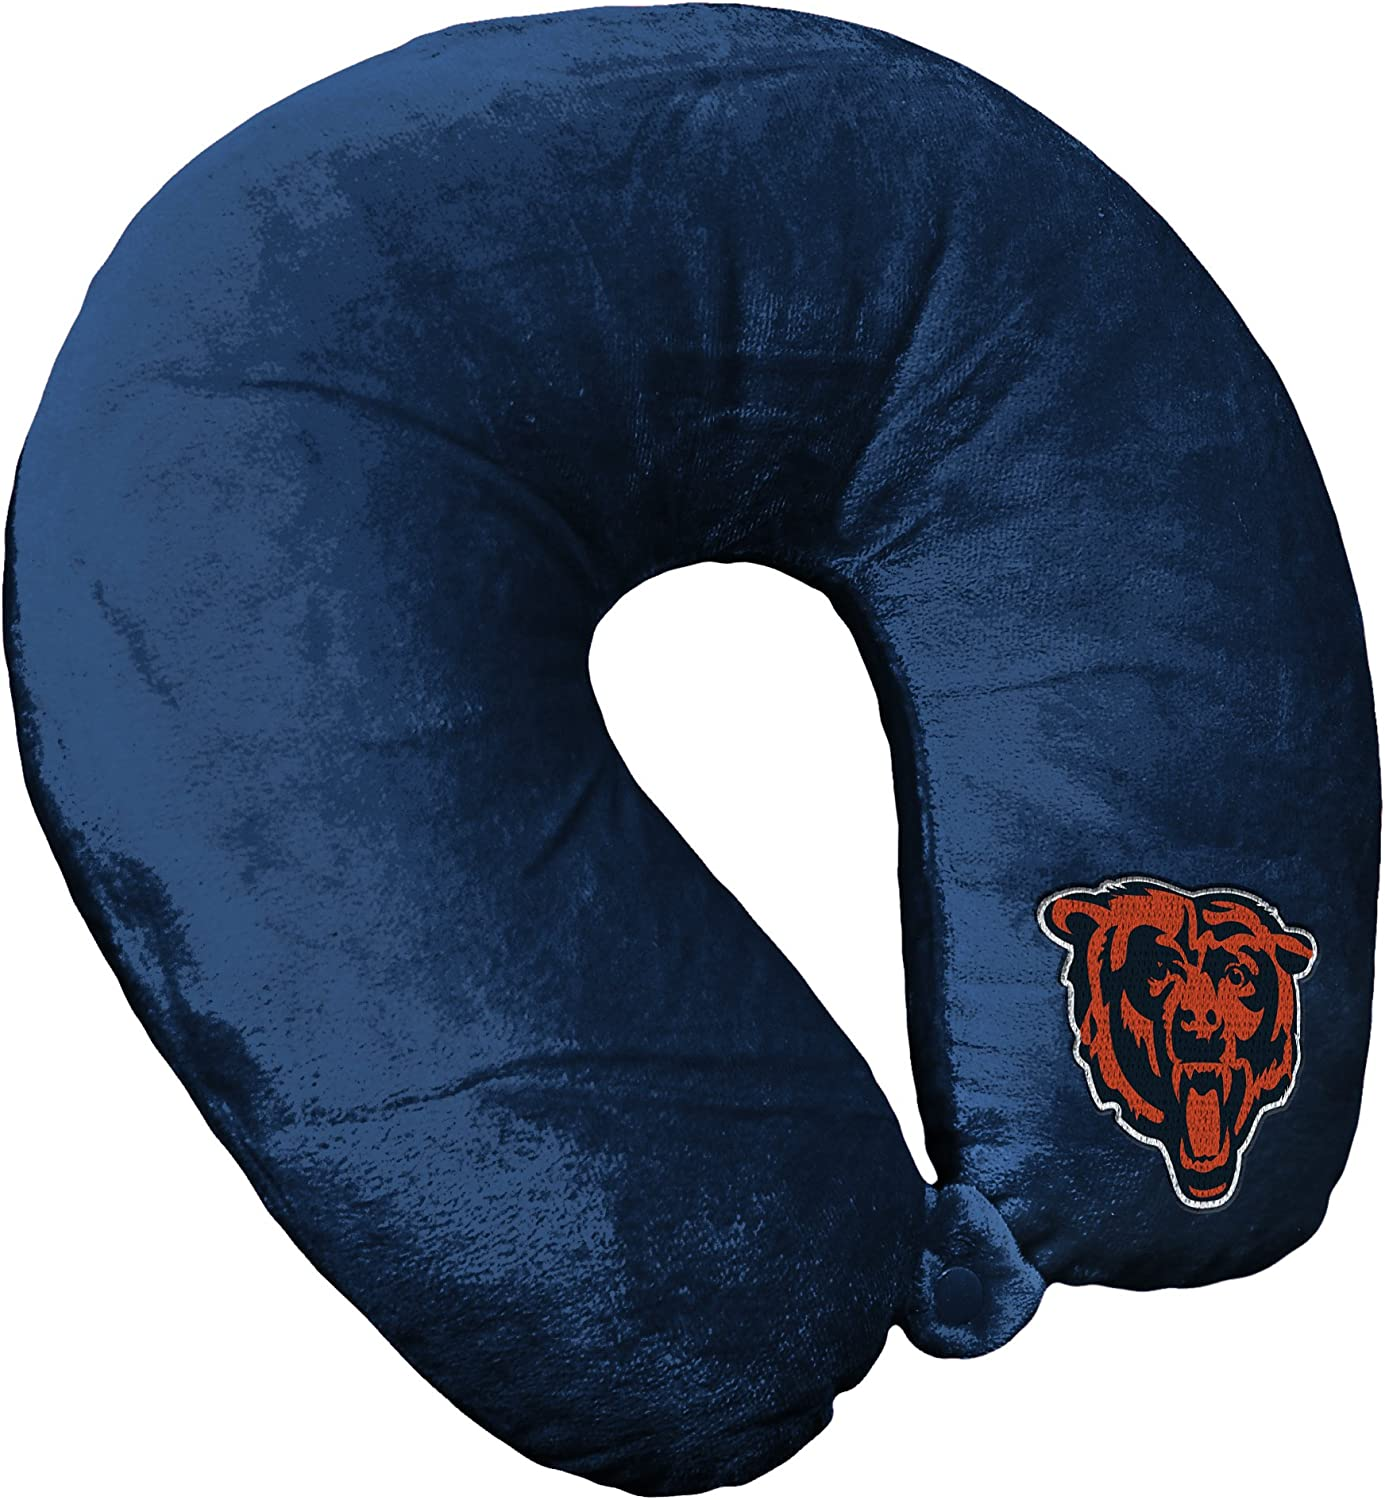 Officially Licensed NFL Travel Neck Pillow Multi Color One Size